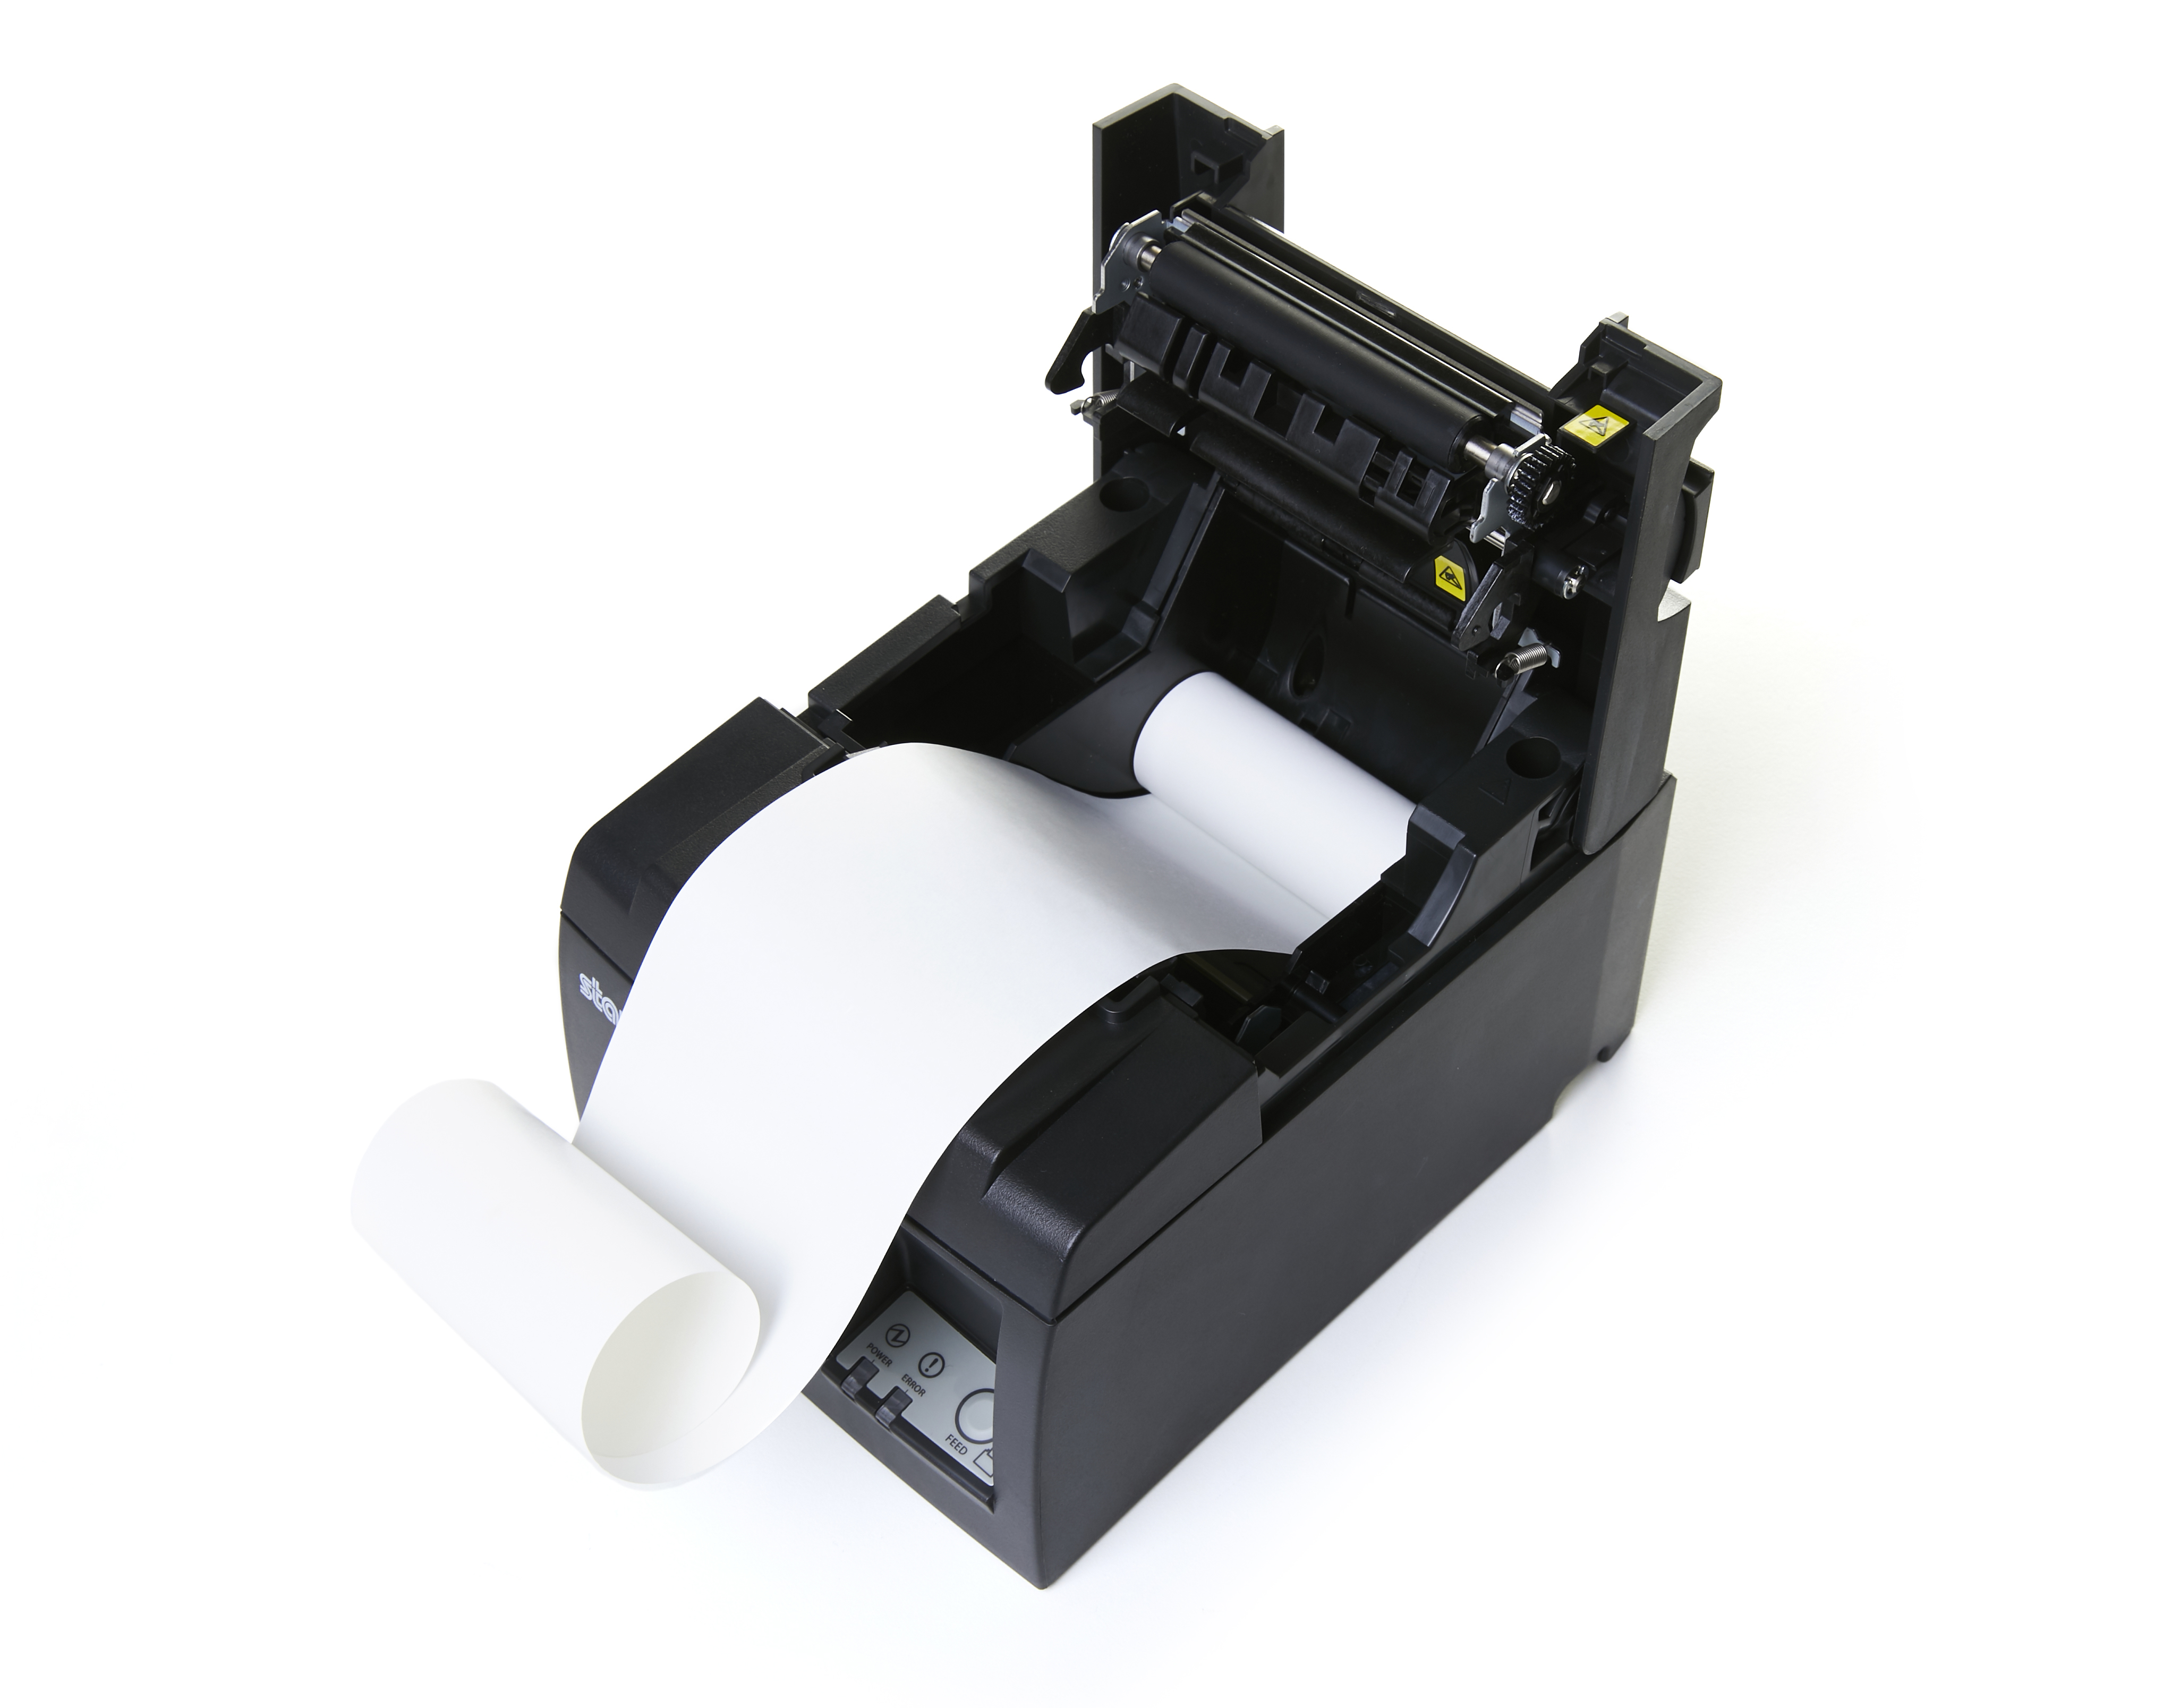 Product_2019_1946_Printer_WithPaper.jpg